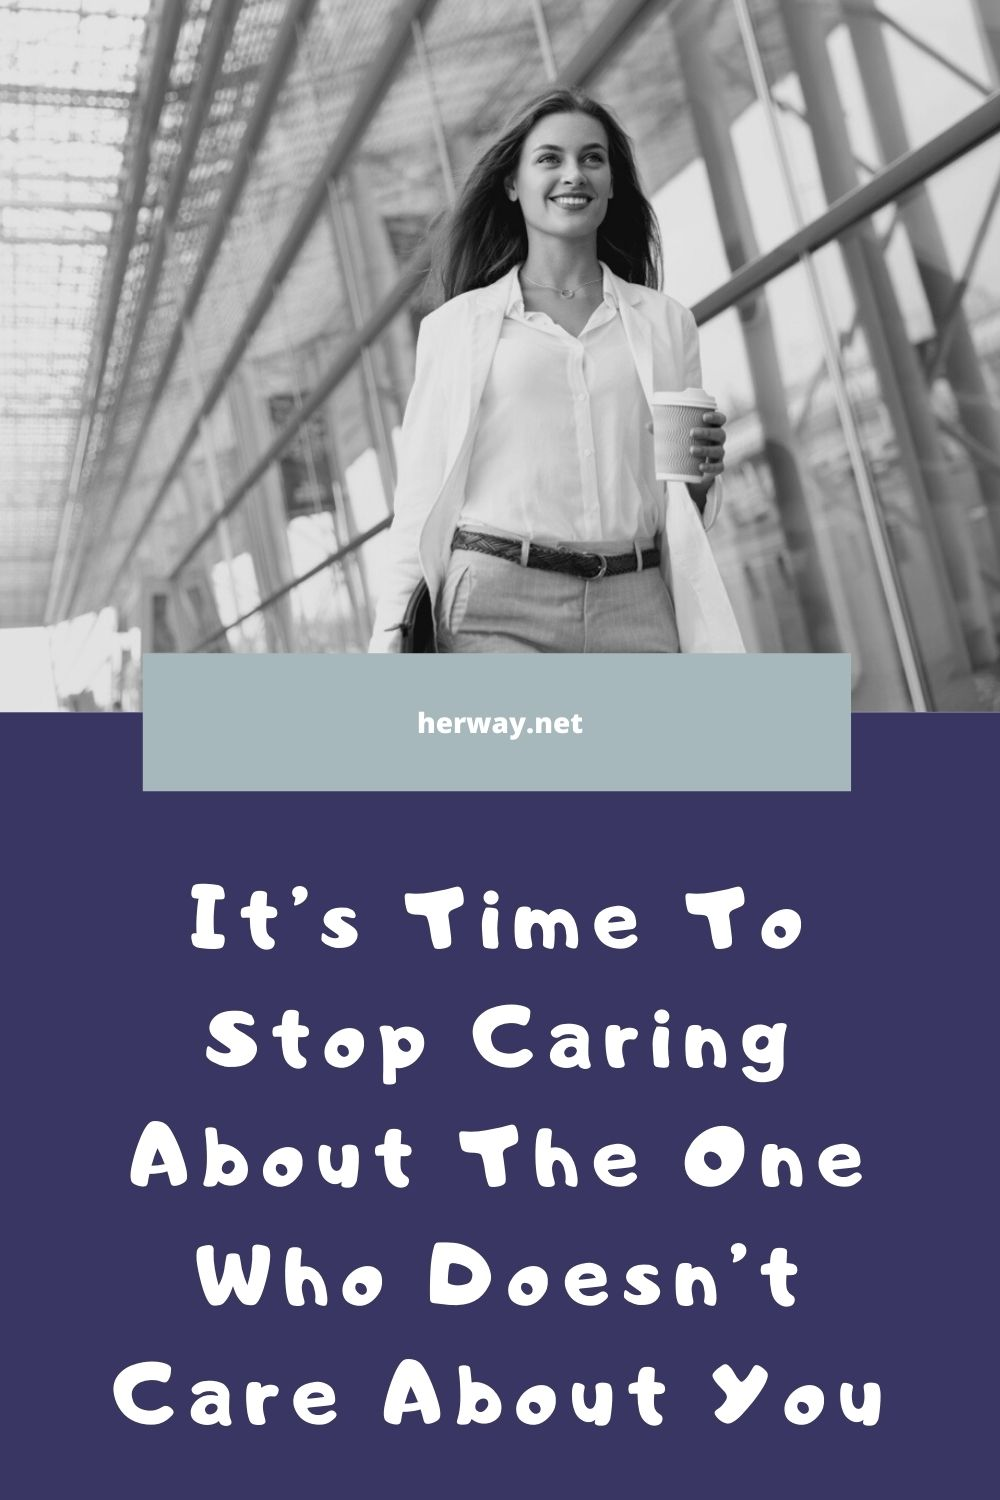 It's Time To Stop Caring About The One Who Doesn't Care About You